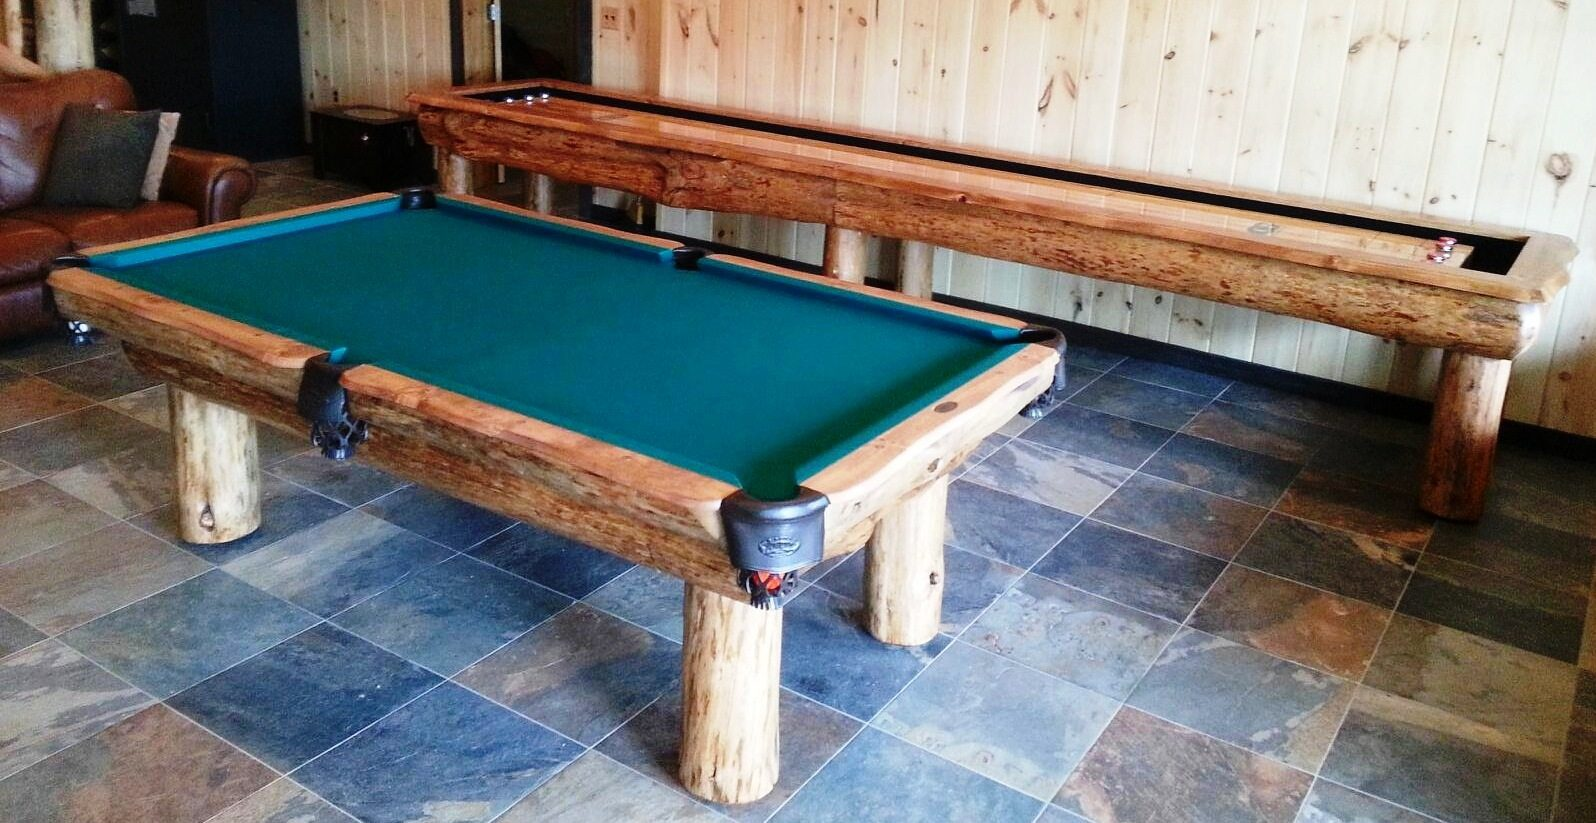 New Cumberland Pool Table Olhausen Montgomeryville PA - Pool table movers philadelphia